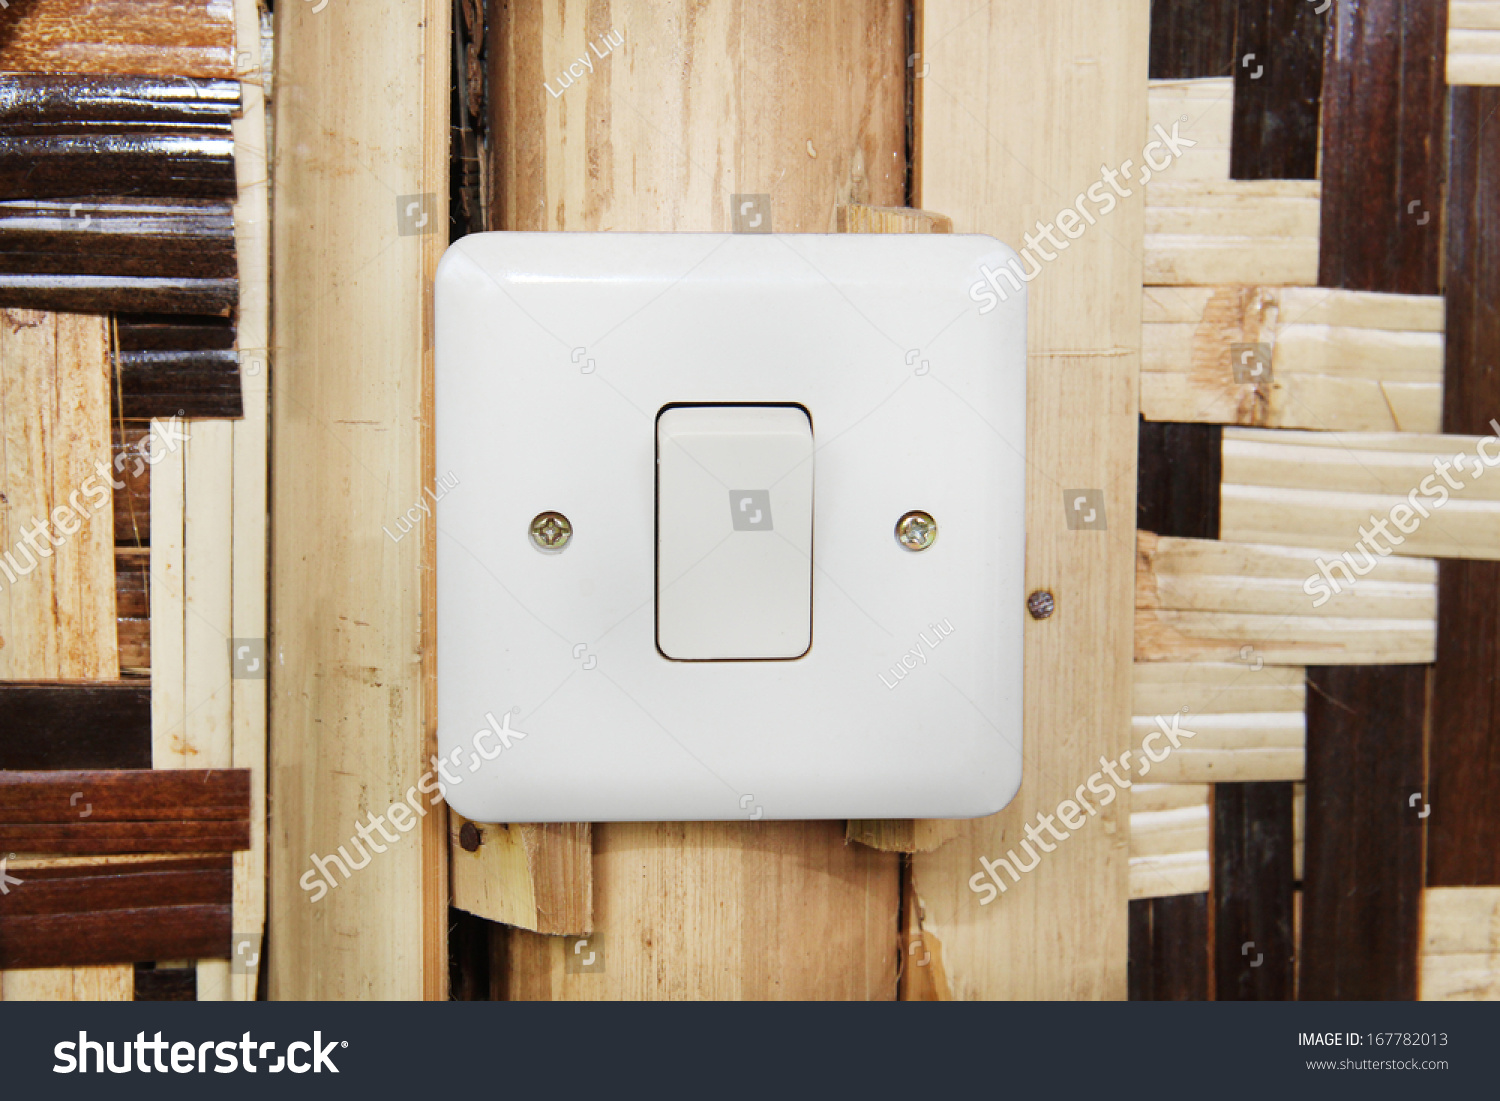 Modern Electrical Switches Colors Switch Country Hut Stock Photo 167782013